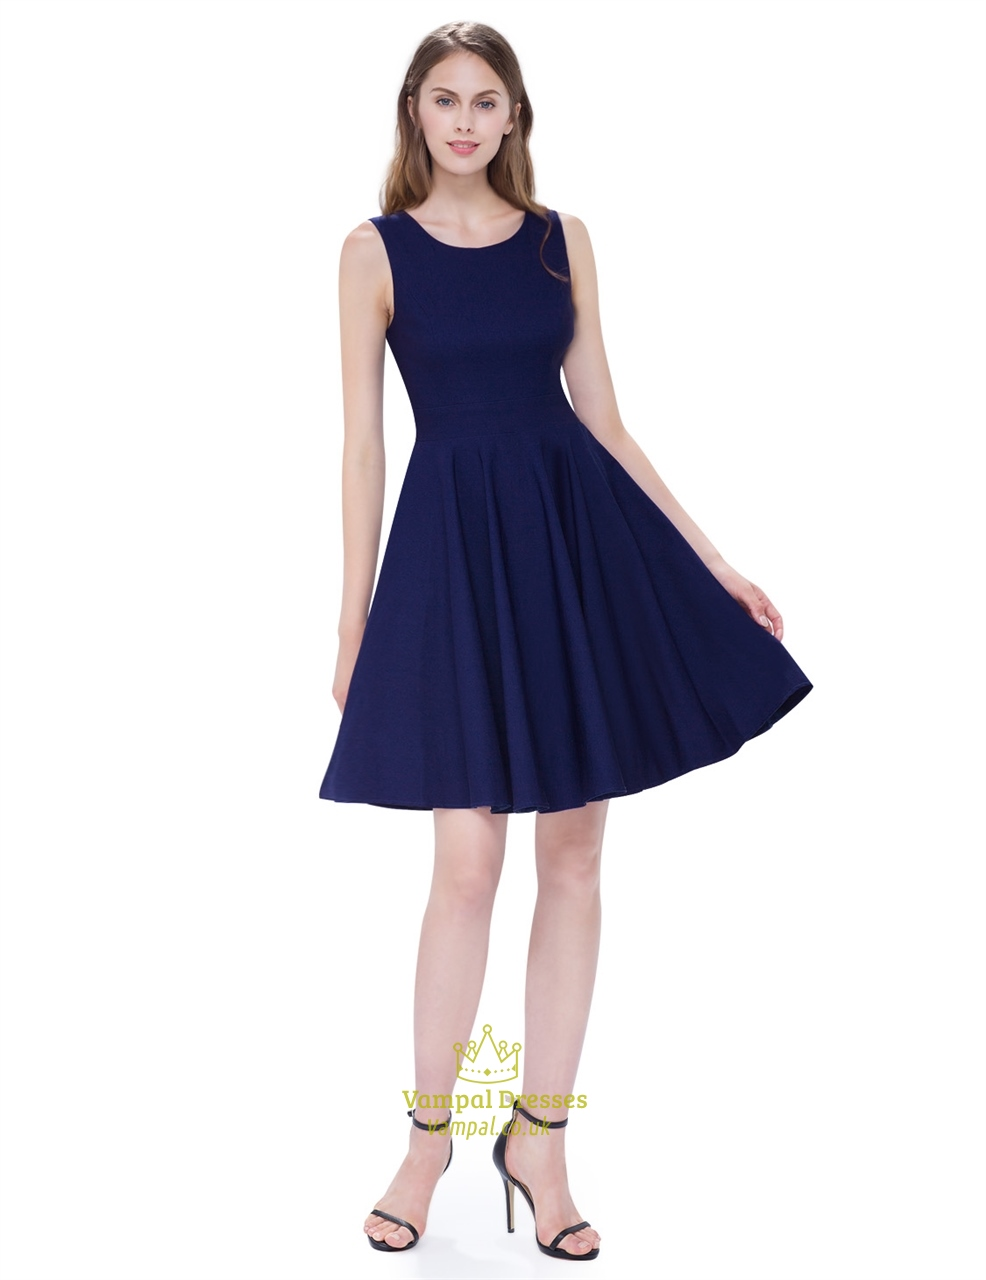 Vintage Navy Blue Scoop Neck Sleeveless Fit And Flare Cocktail Dress ...